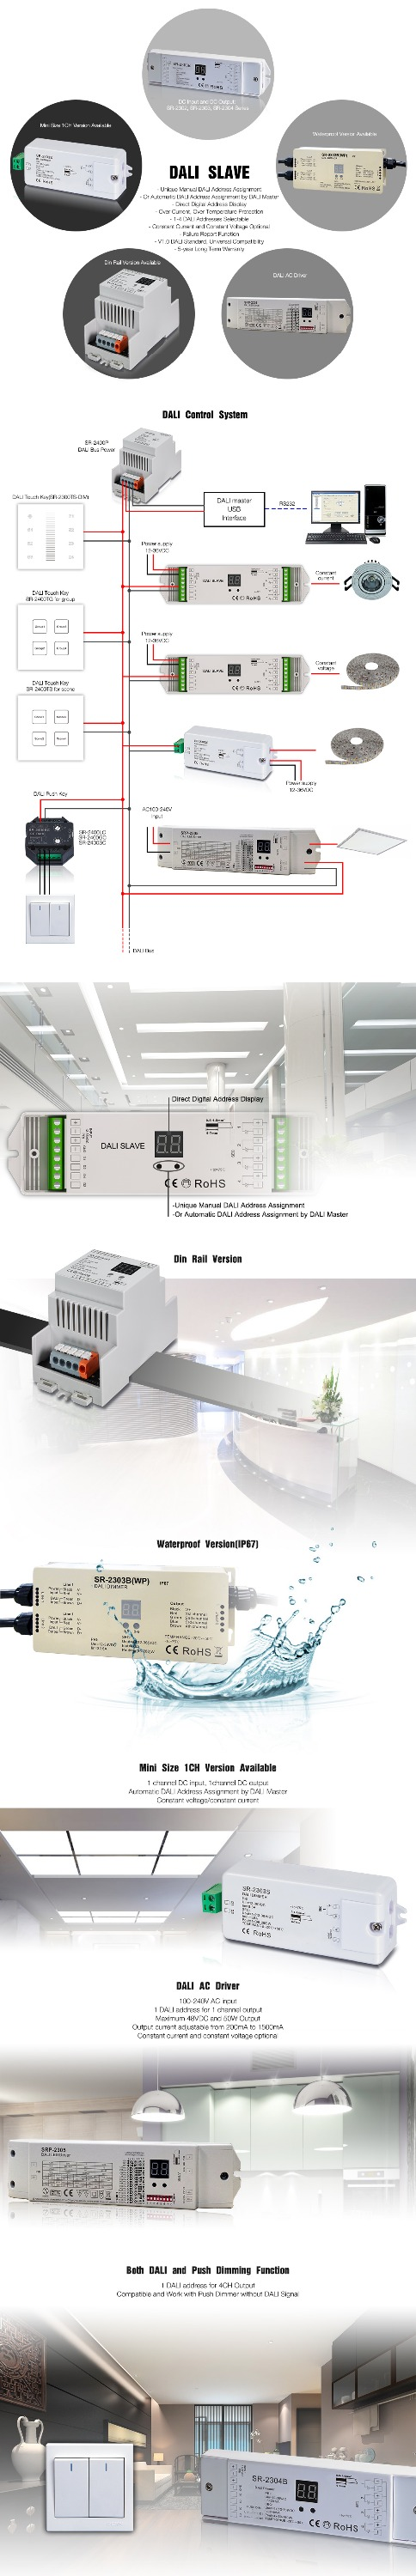 Dali Verlichting Controle Systeem Voor Led Lint - Buy Dali Led ...